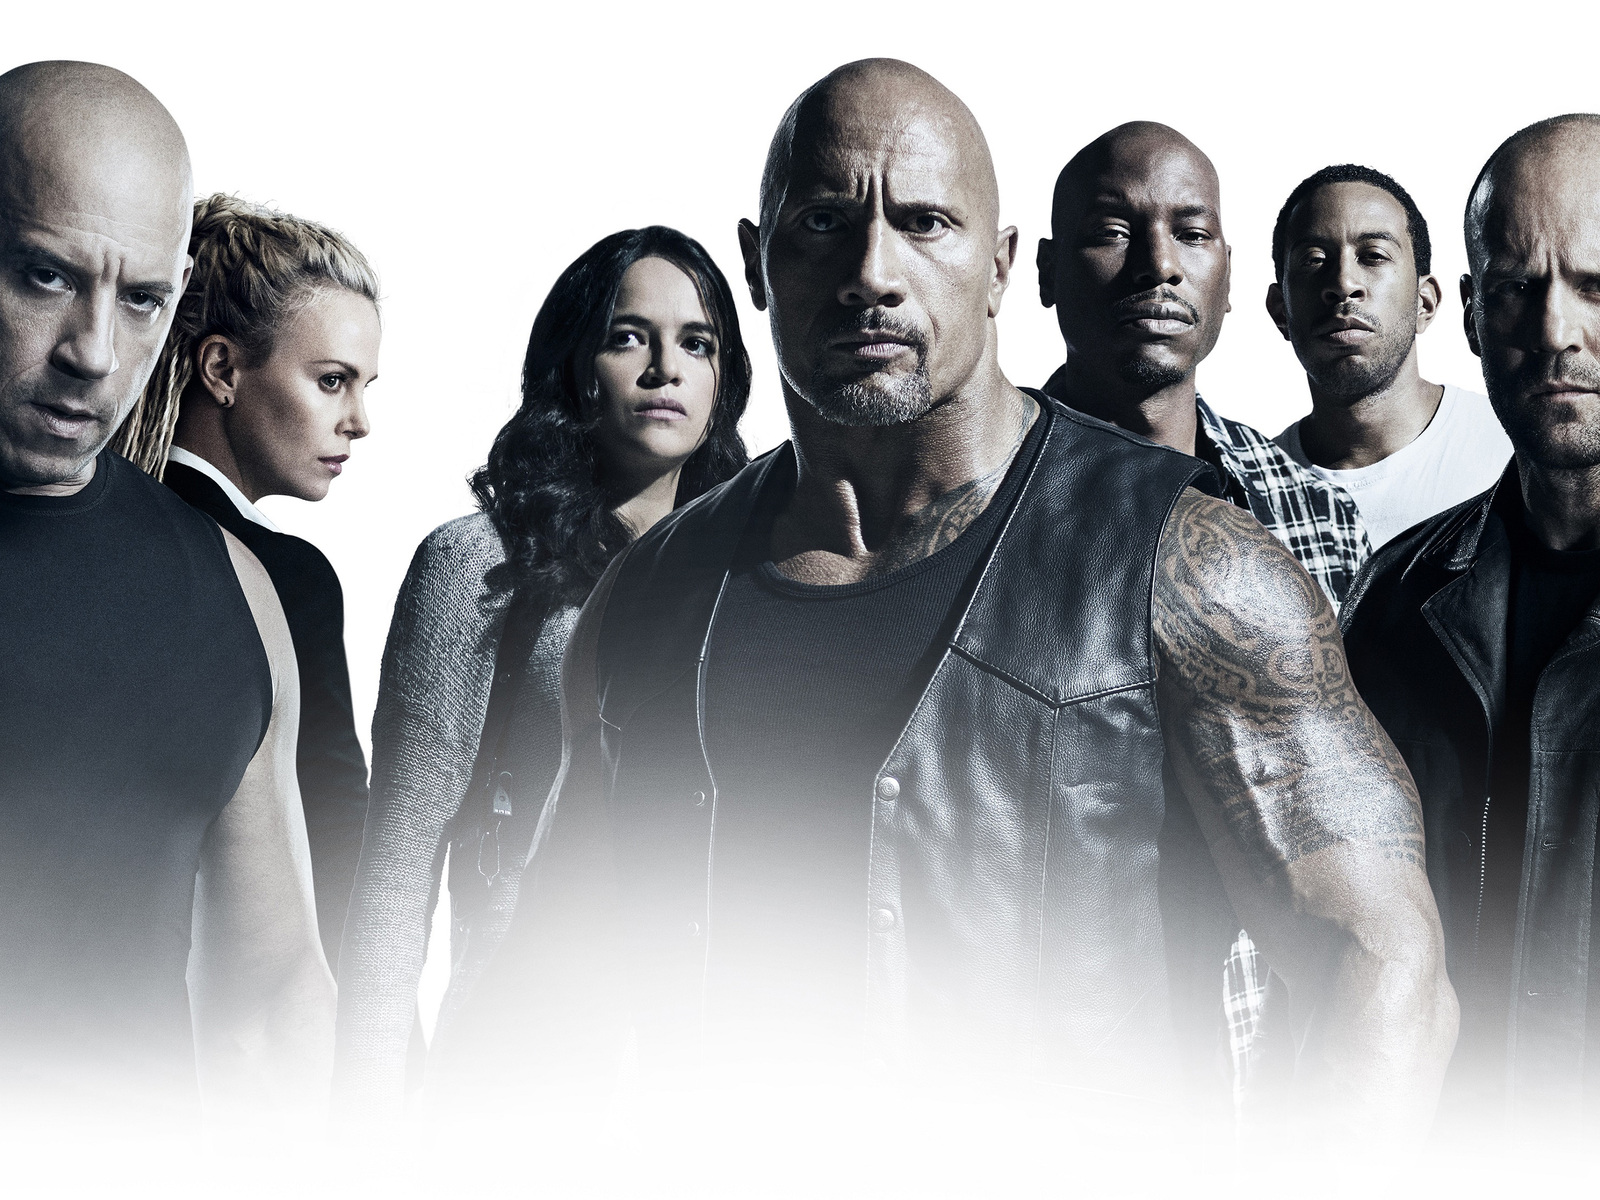 the-fate-of-the-furious-image.jpg